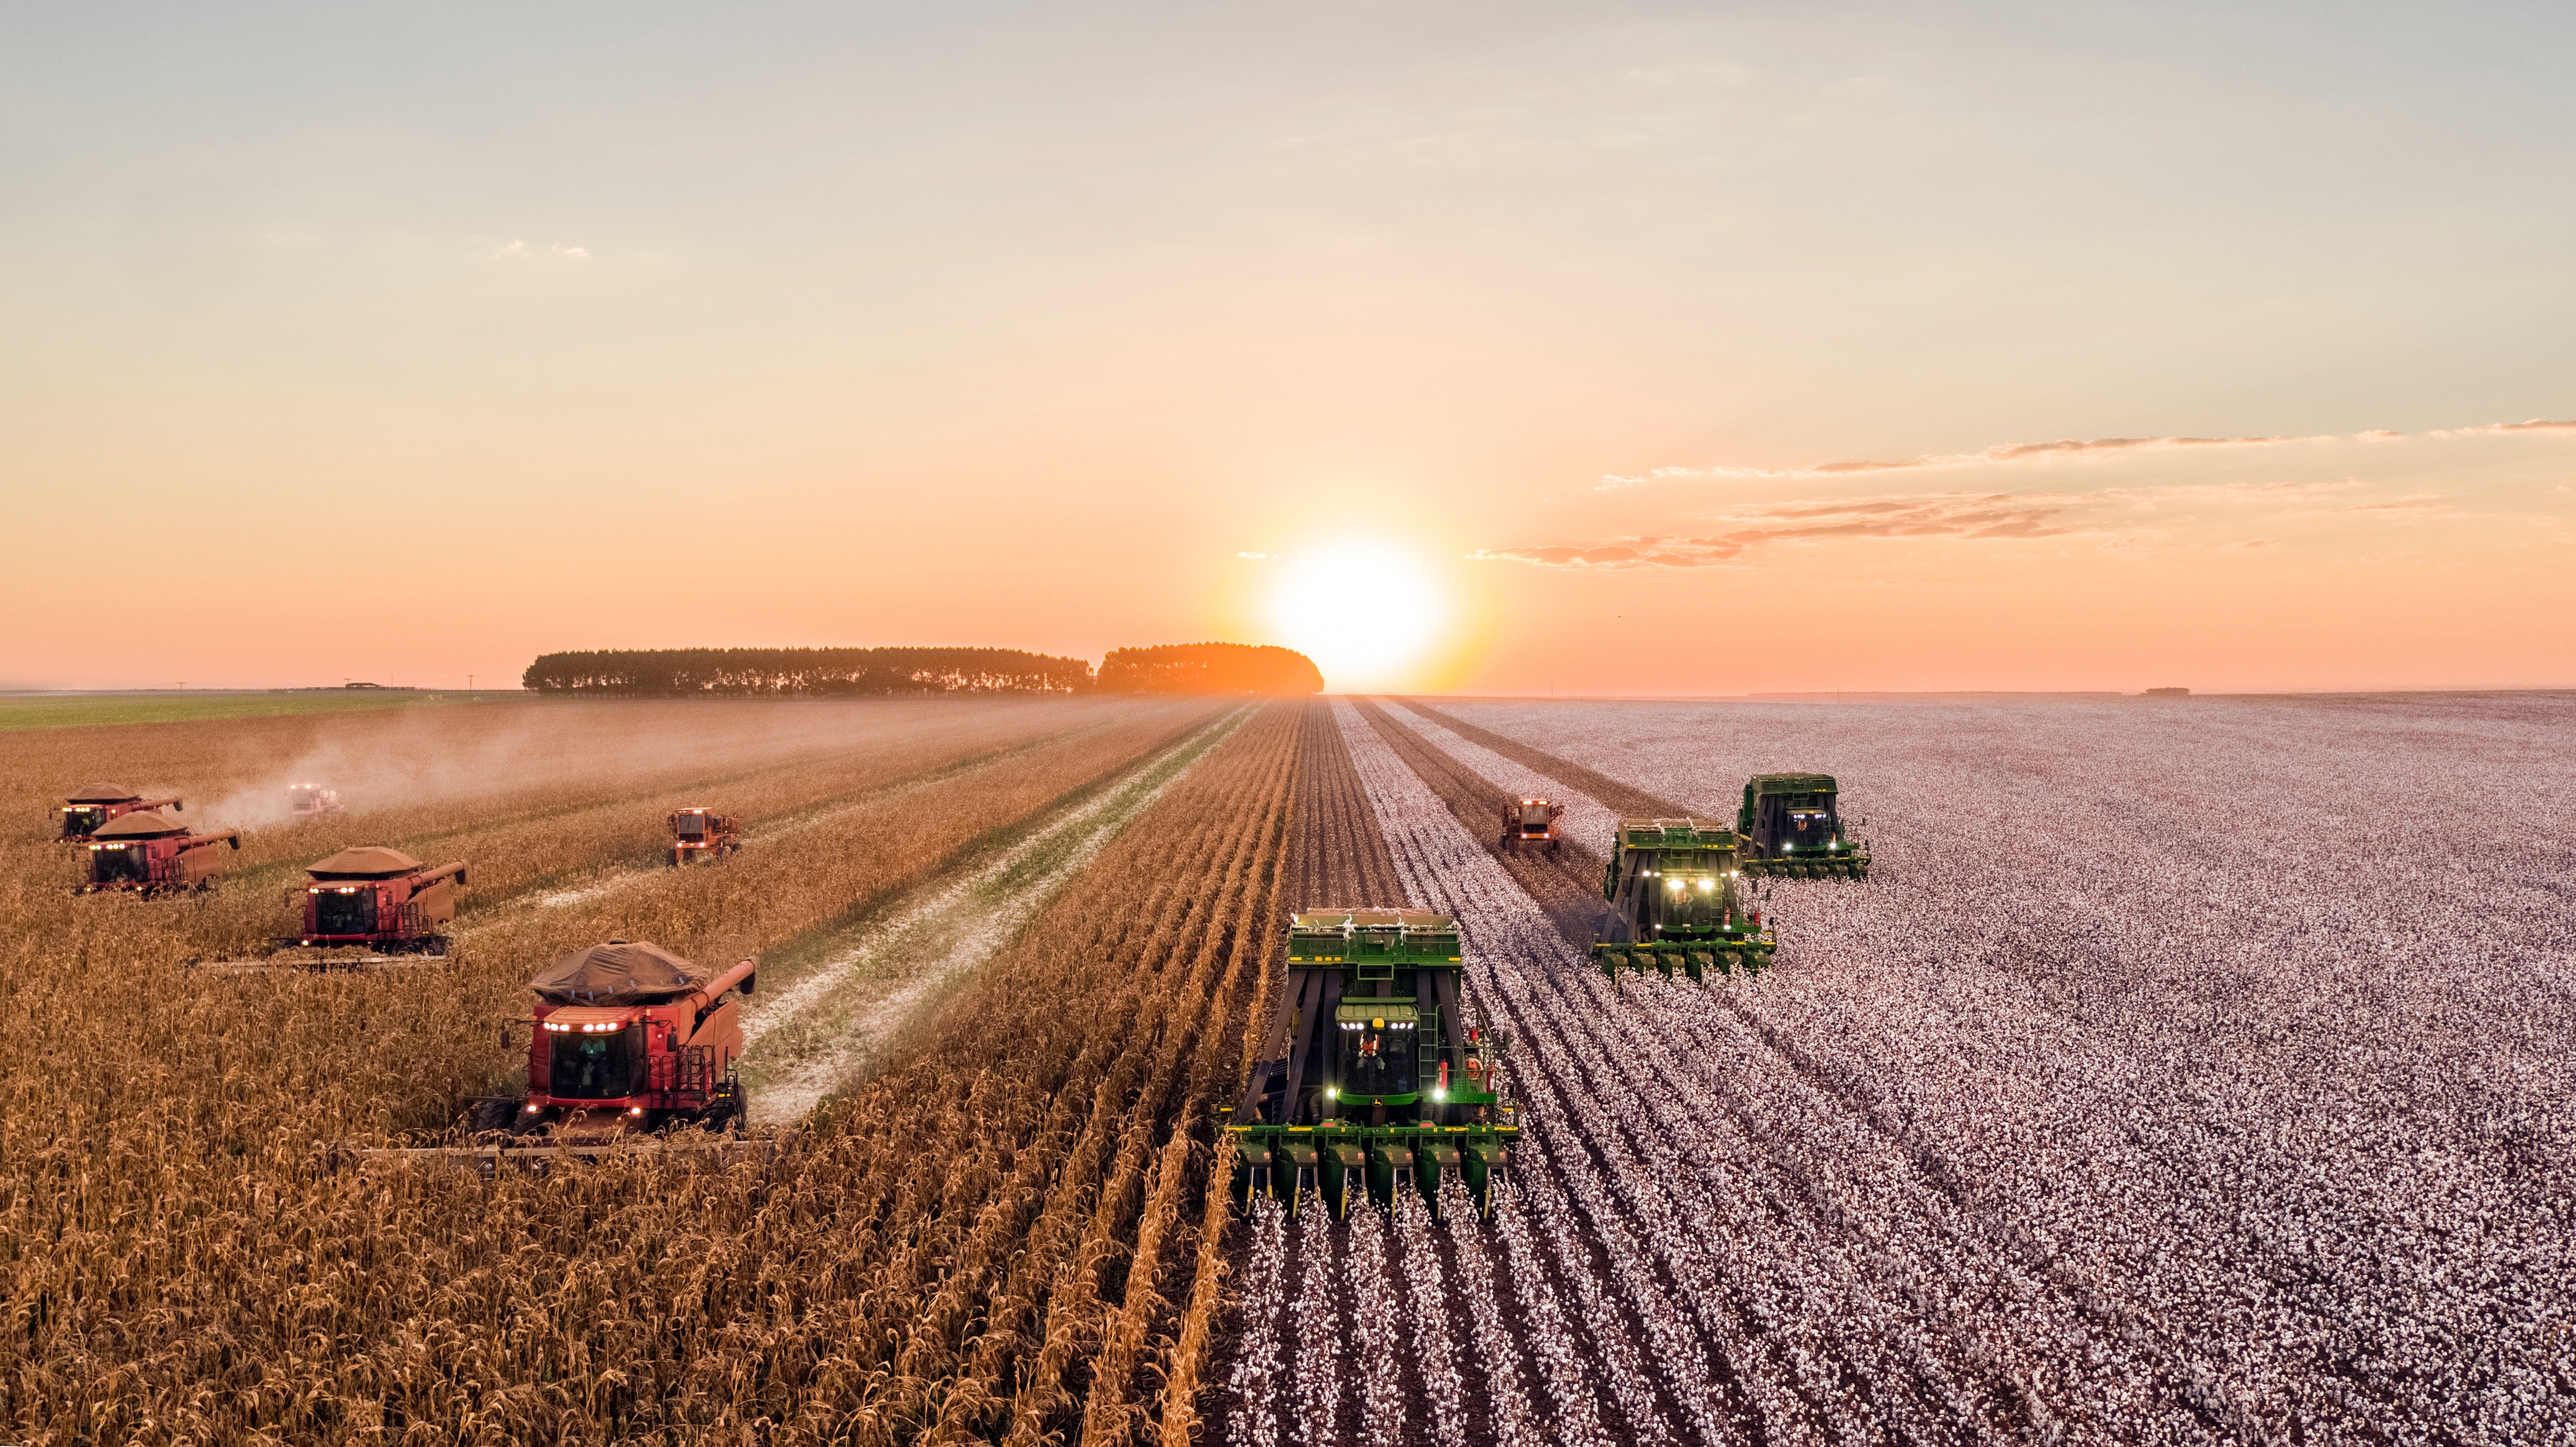 Image of harvesters in a field with the sun setting behind them